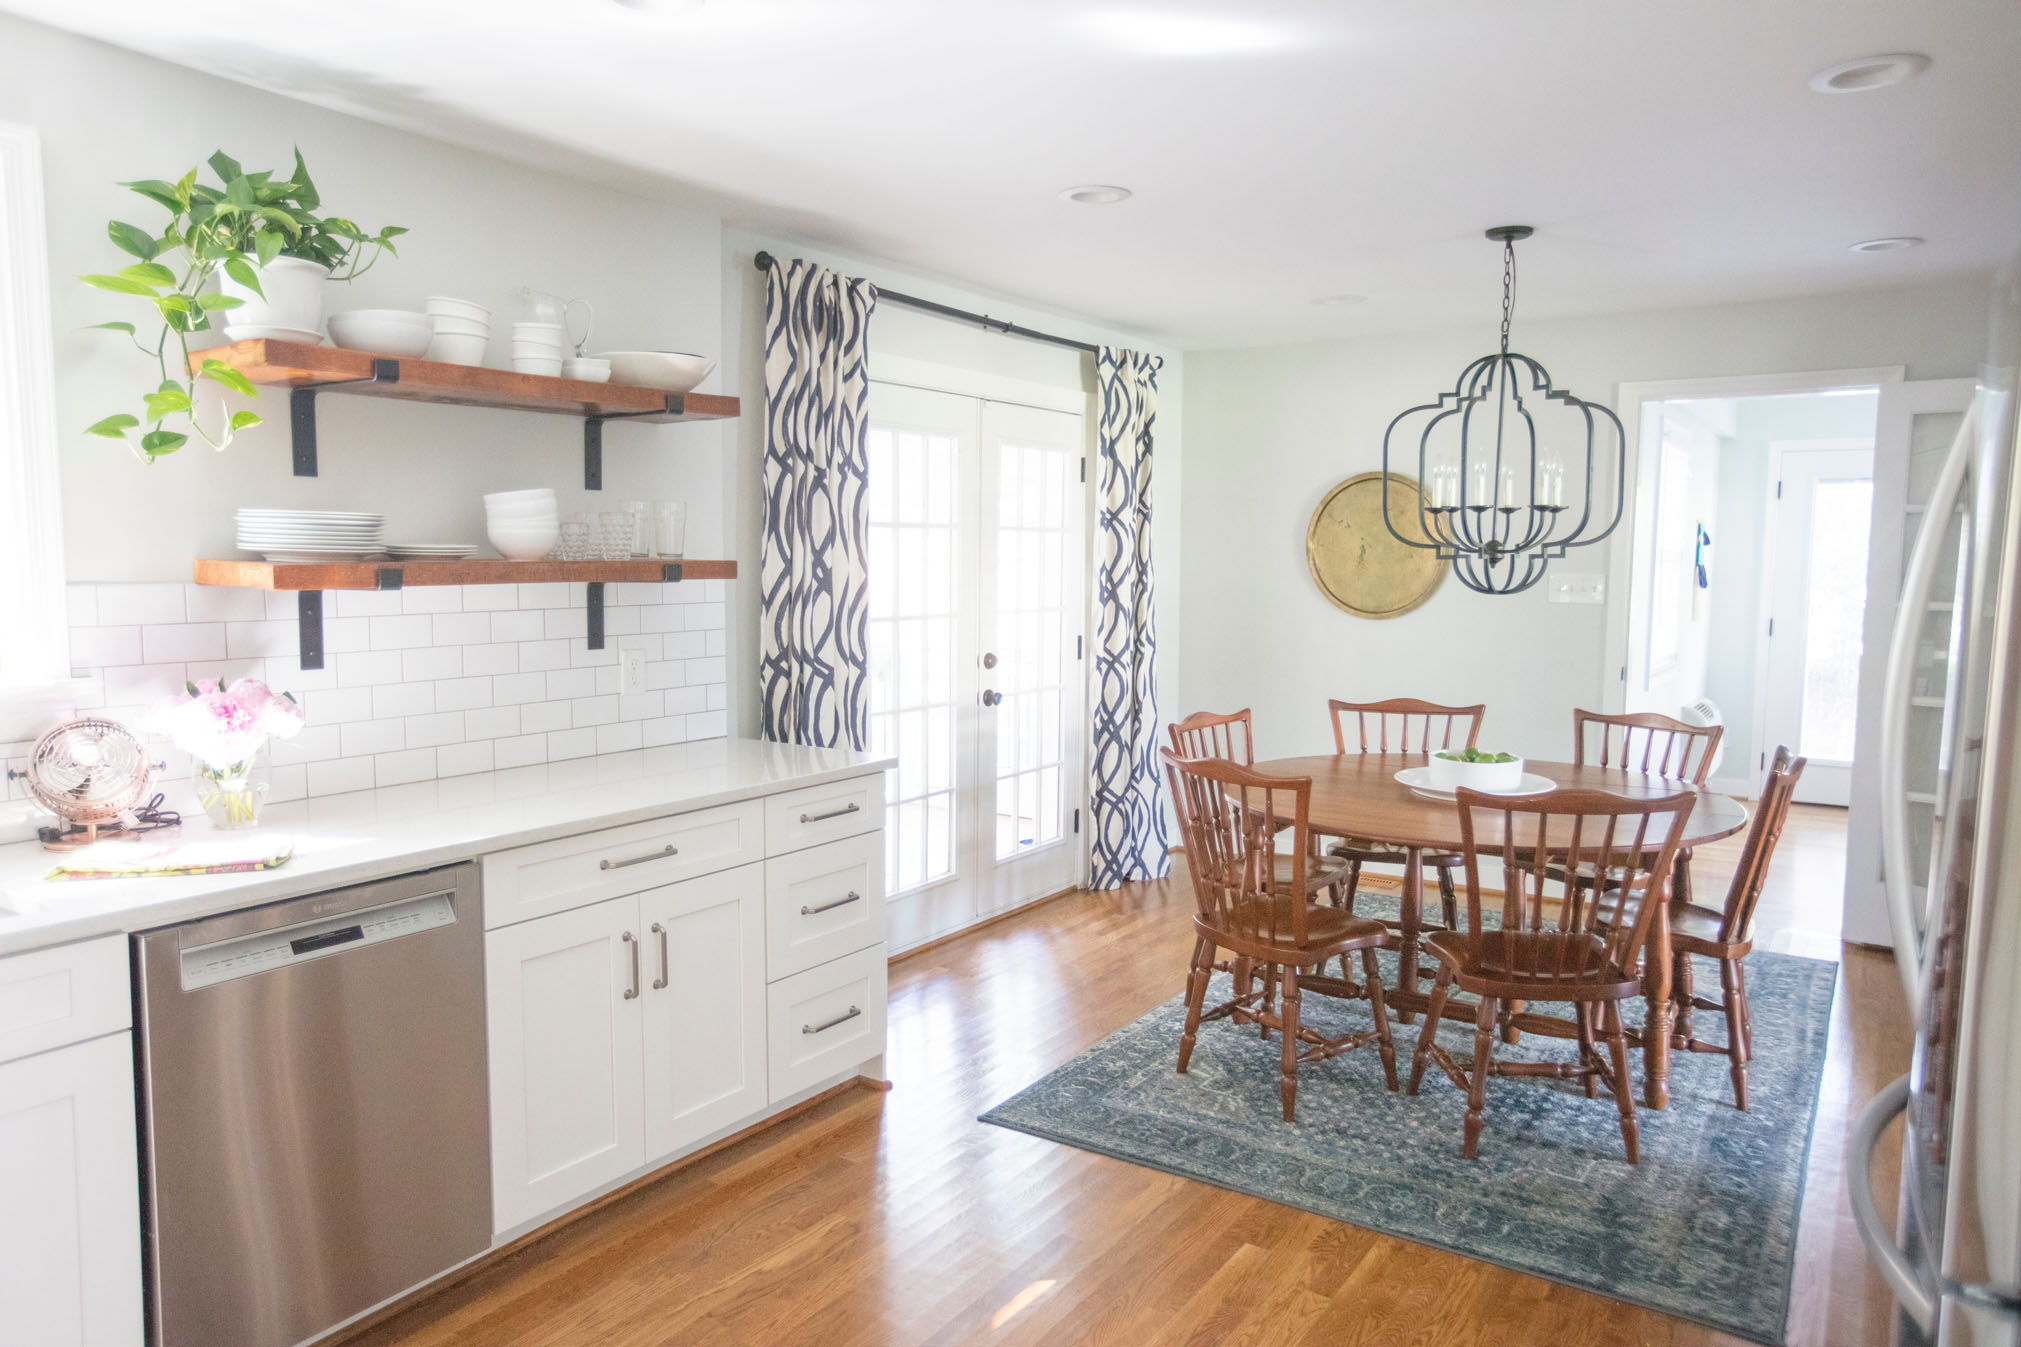 Relaxed Transitional - Boho and contemporary accents with classic furnishings.